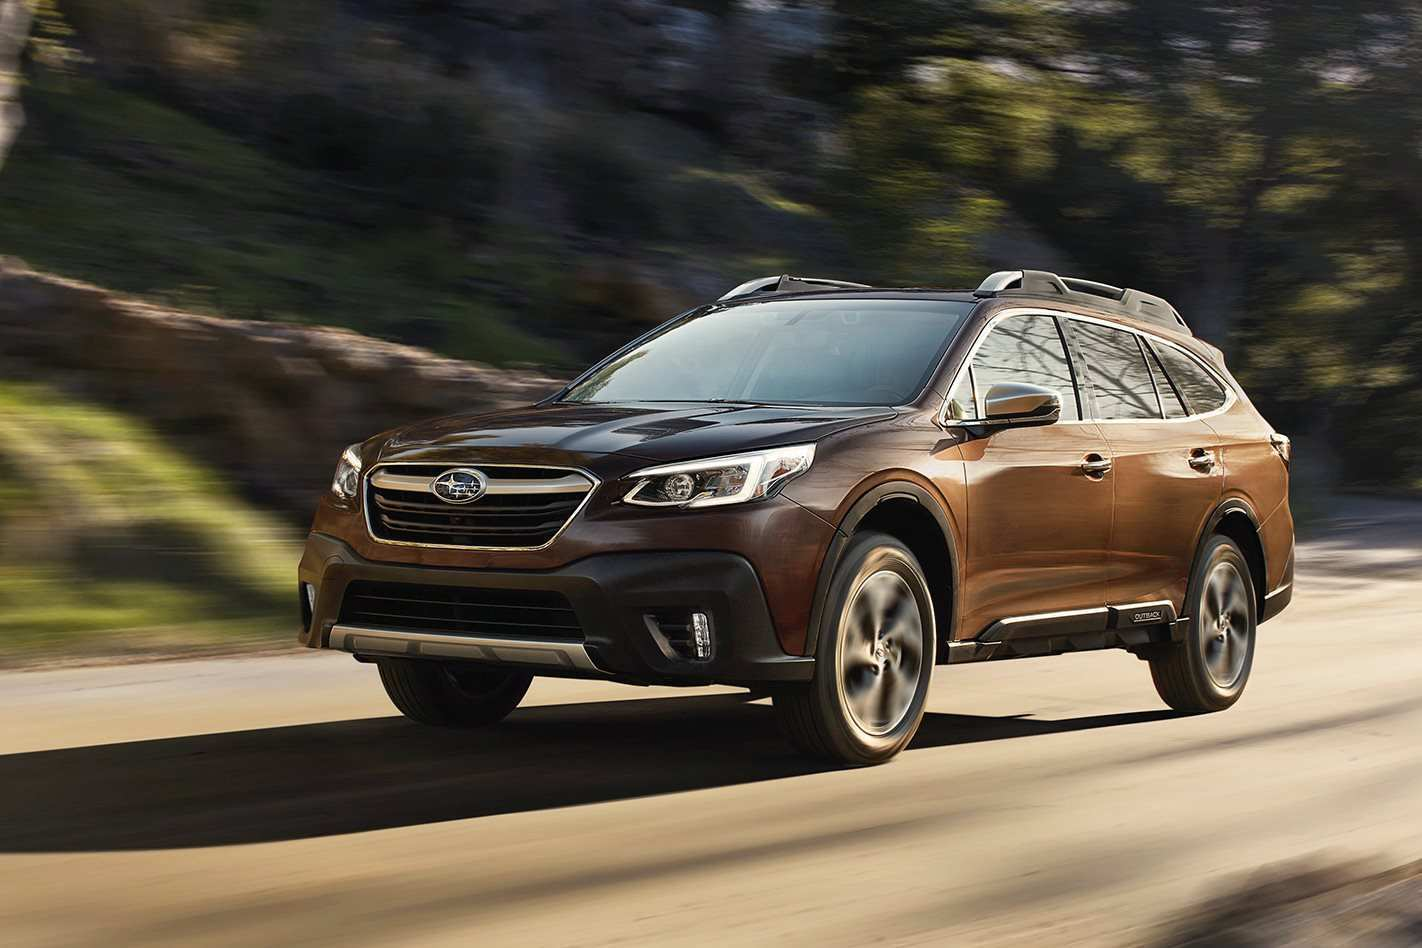 26 All New 2020 Subaru Outback Turbo Model